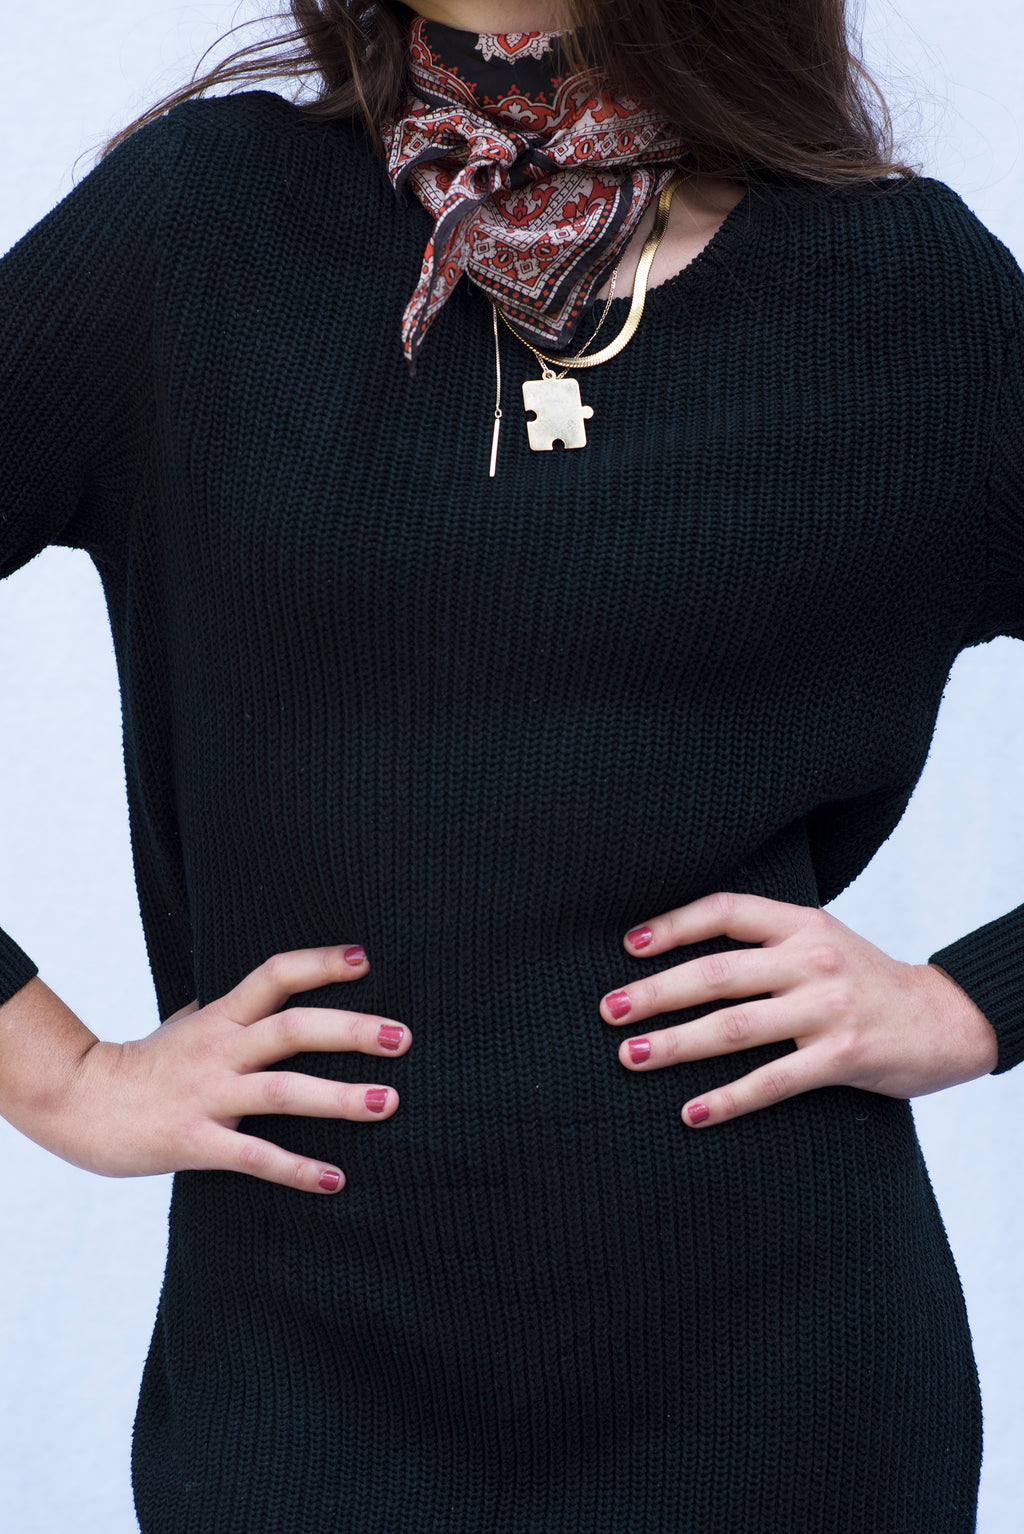 Vintage Black Cable Knit Sweater Dress